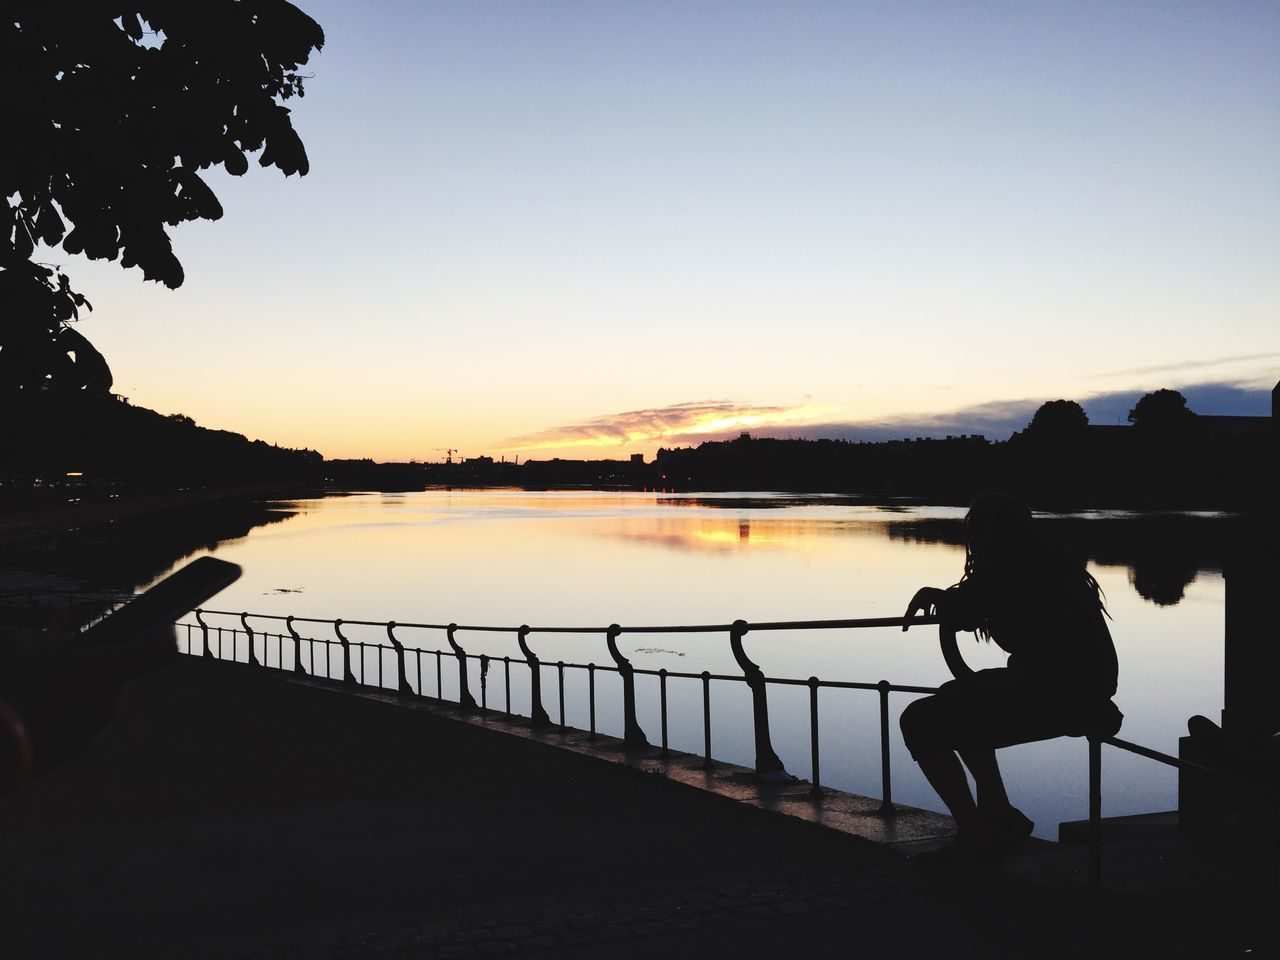 Silhouette Woman Sitting On Railing By Lake Against Sunset Sky